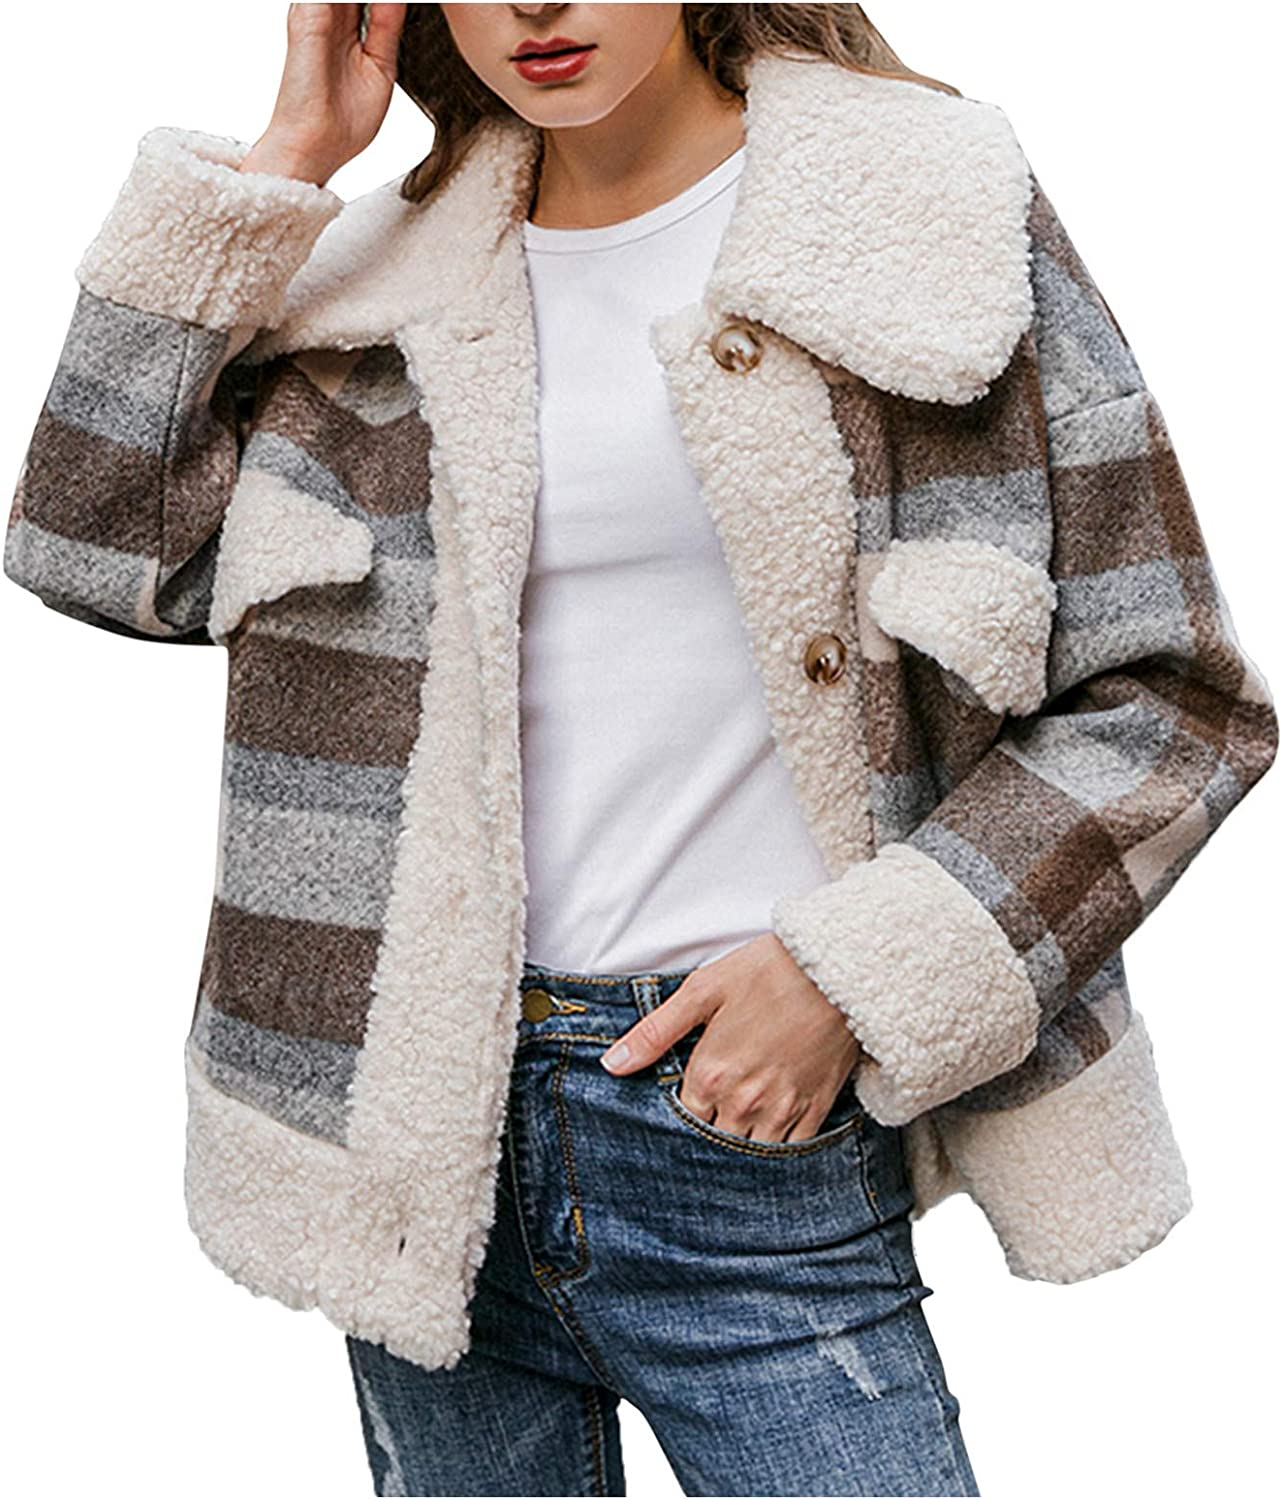 Forwelly Women Fall Winter Fuzzy Overcoat Classic Plaid Long Sleeve Cropped Jacket Casual Coat